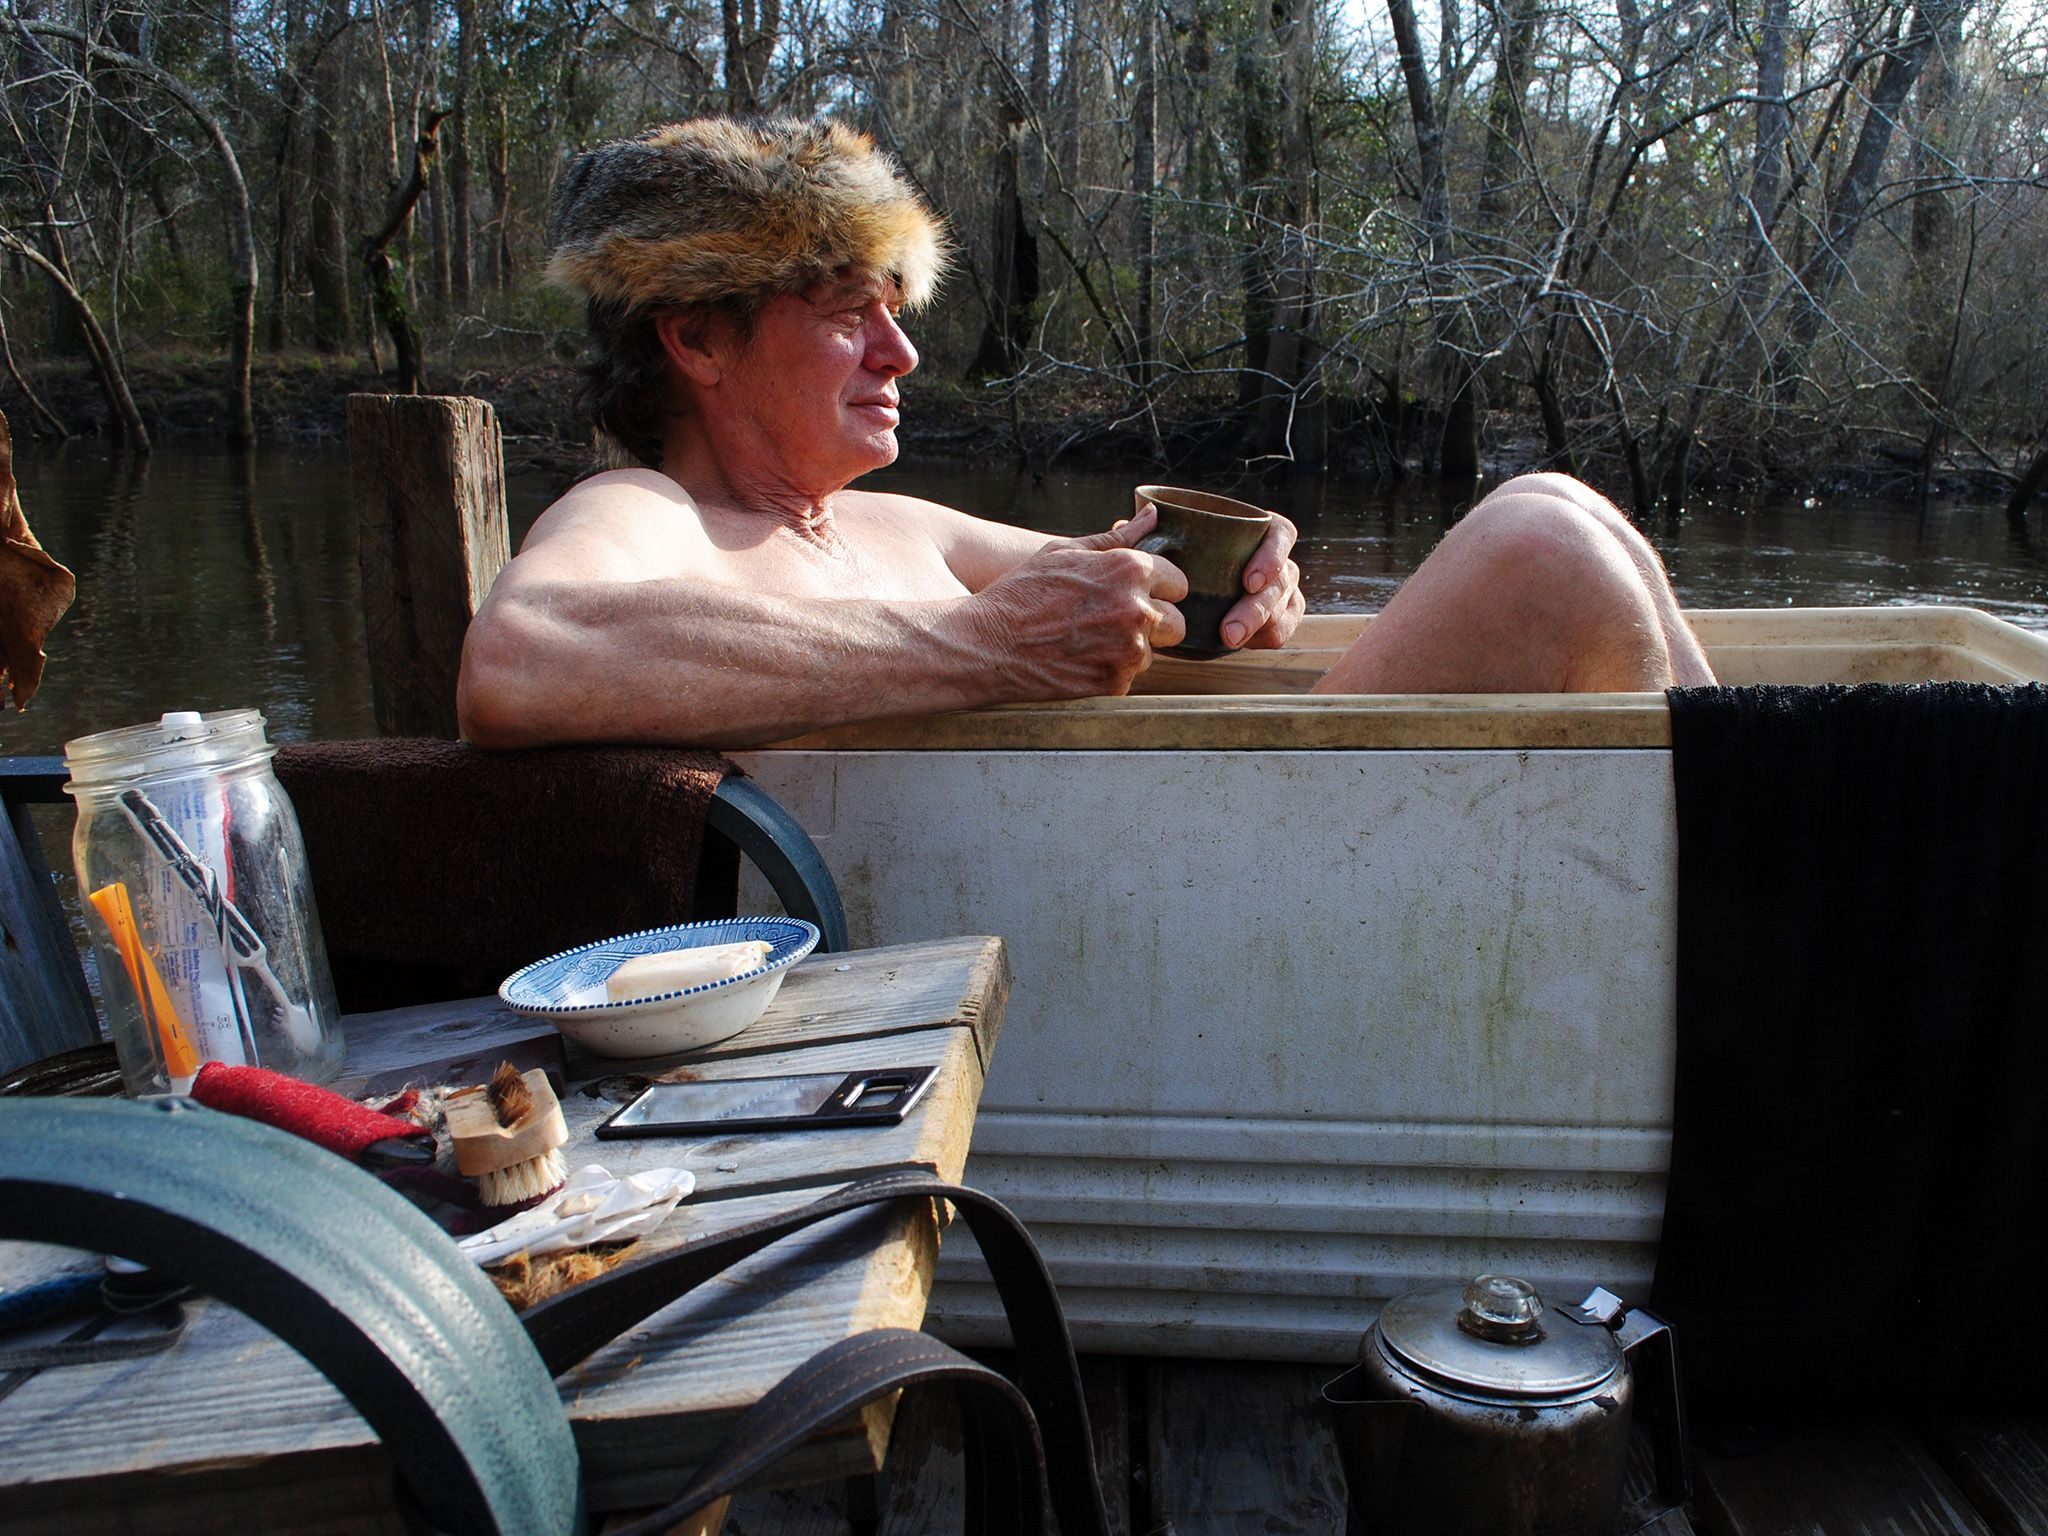 Valdosta, GA, USA: Colbert relaxes in his homemade bath tub. This image is from Live Free or Die. [Photo of the day - December 2014]